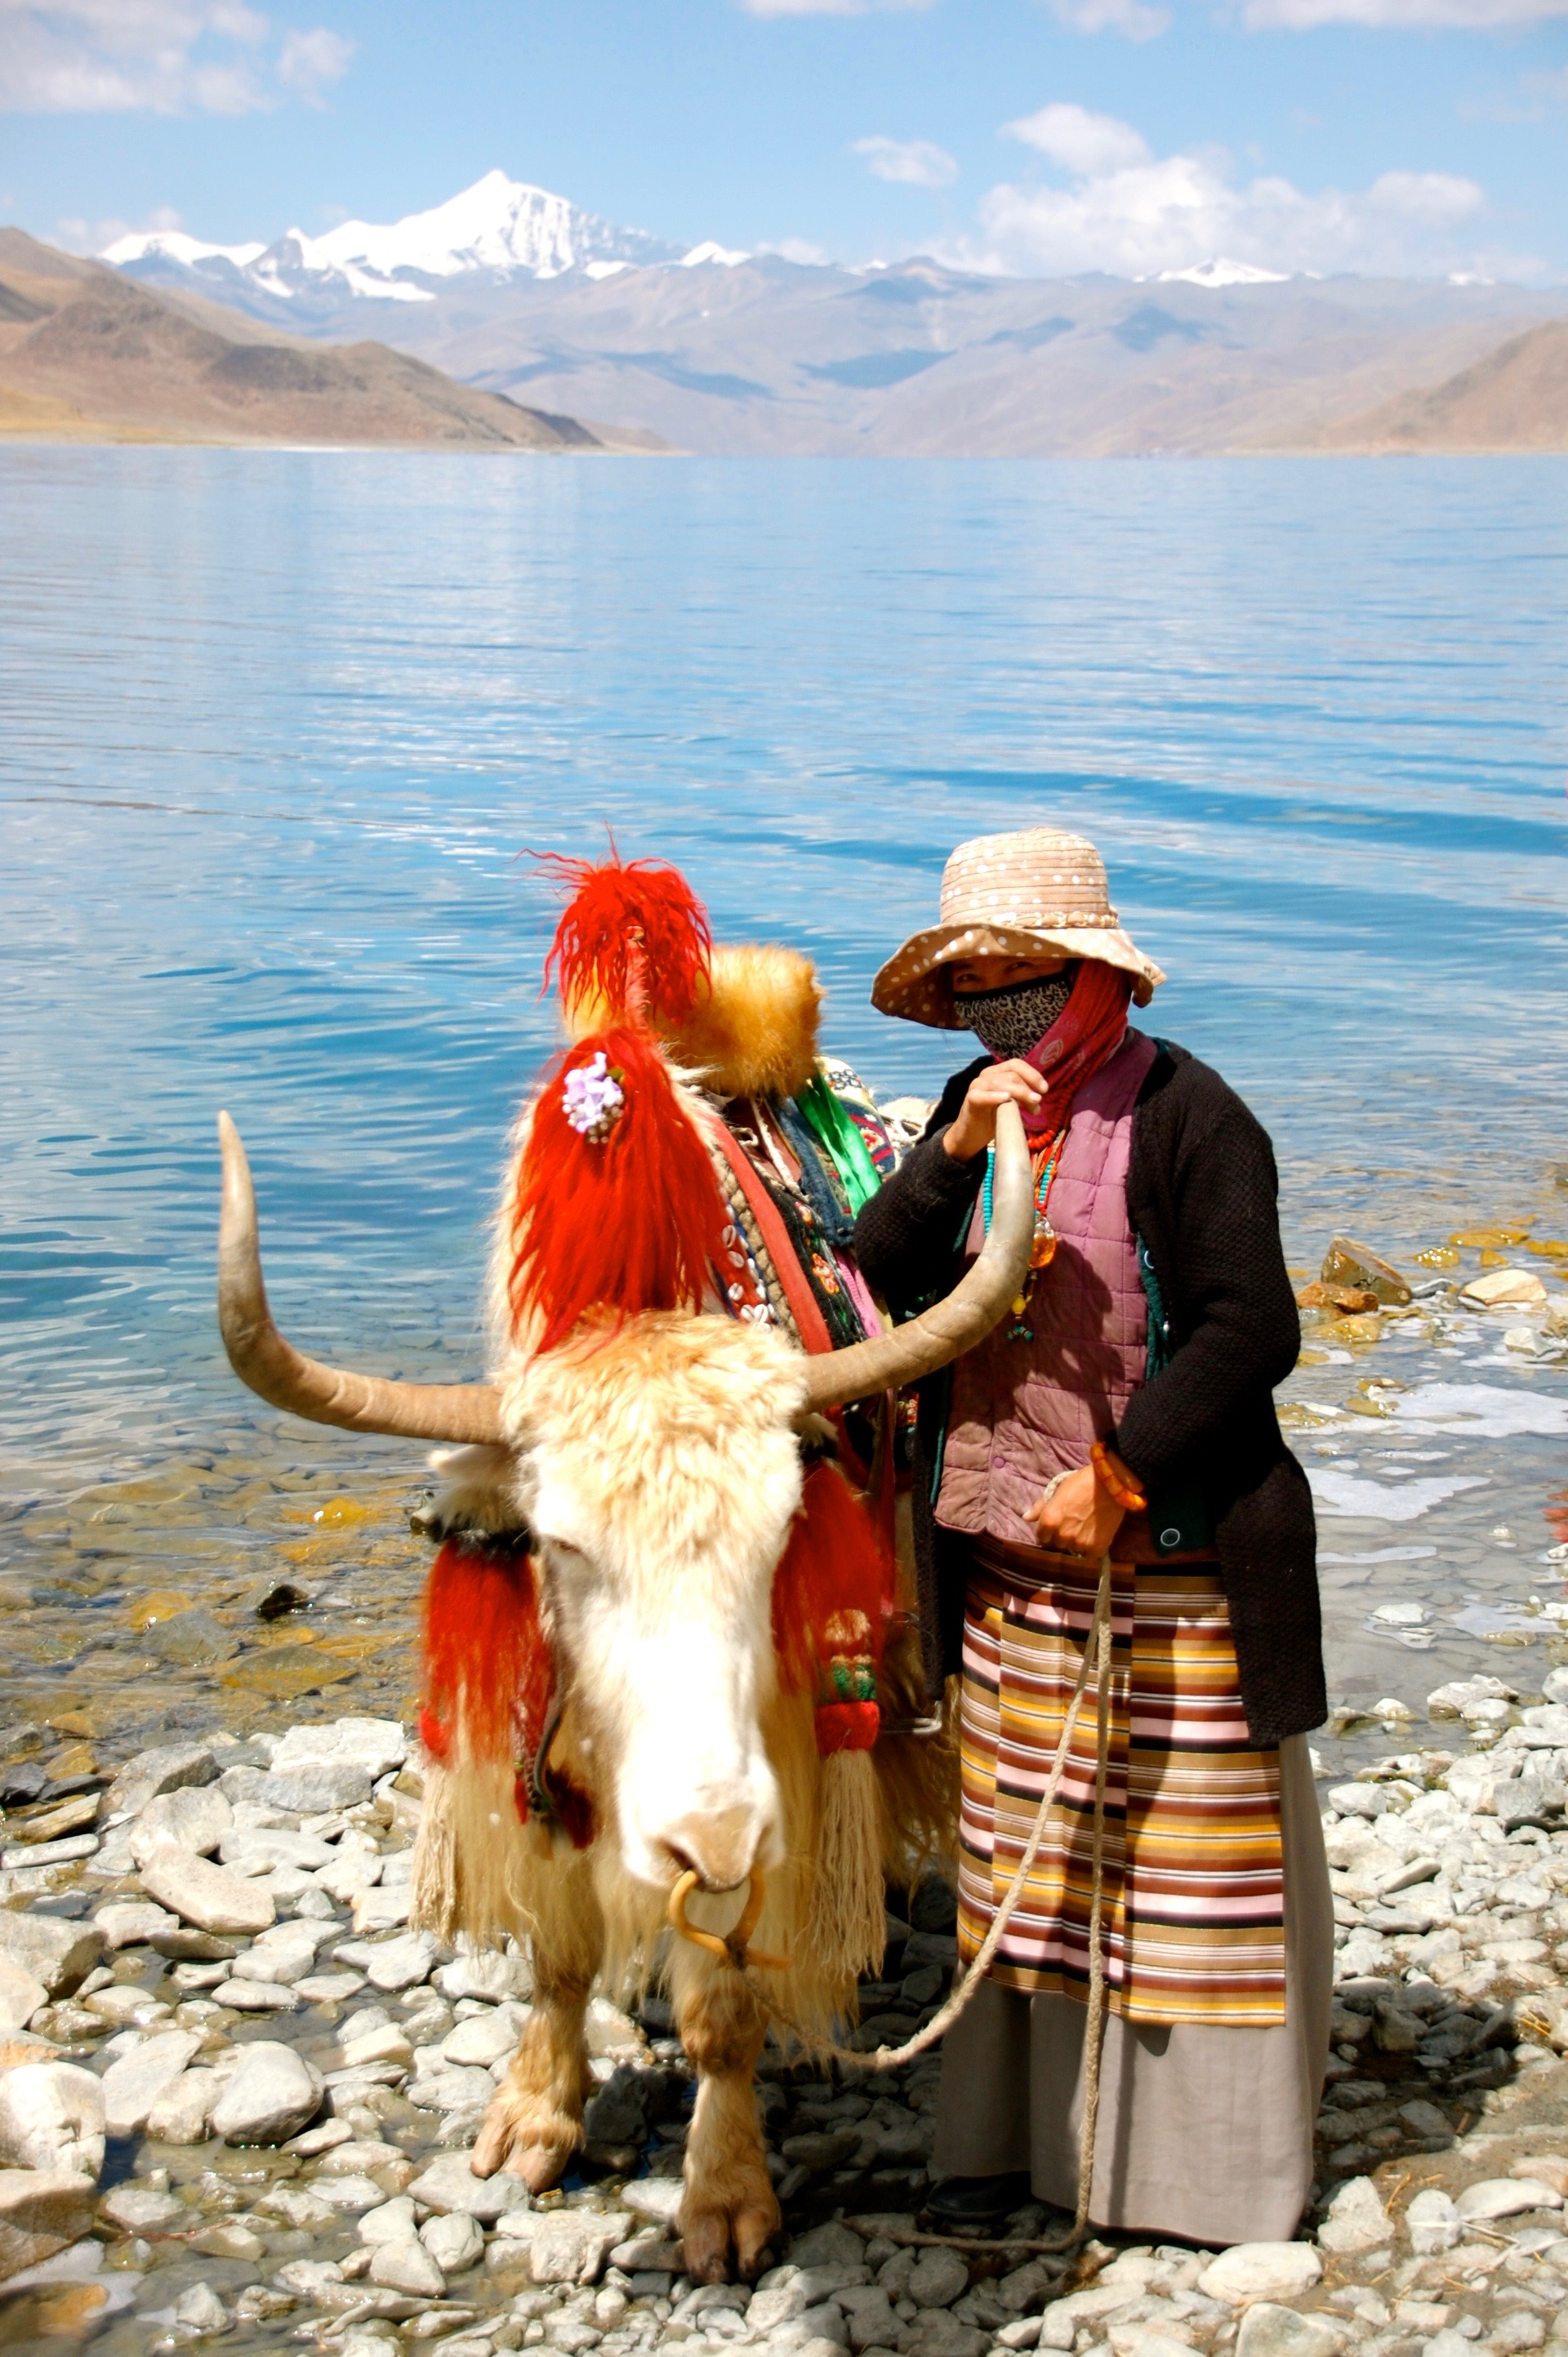 Colorfully adorned yak and handler at Yamdrok Tso Lake, the largest of the sacred lakes of Tibet at close to 45 miles long (Langkazi, Tibet)